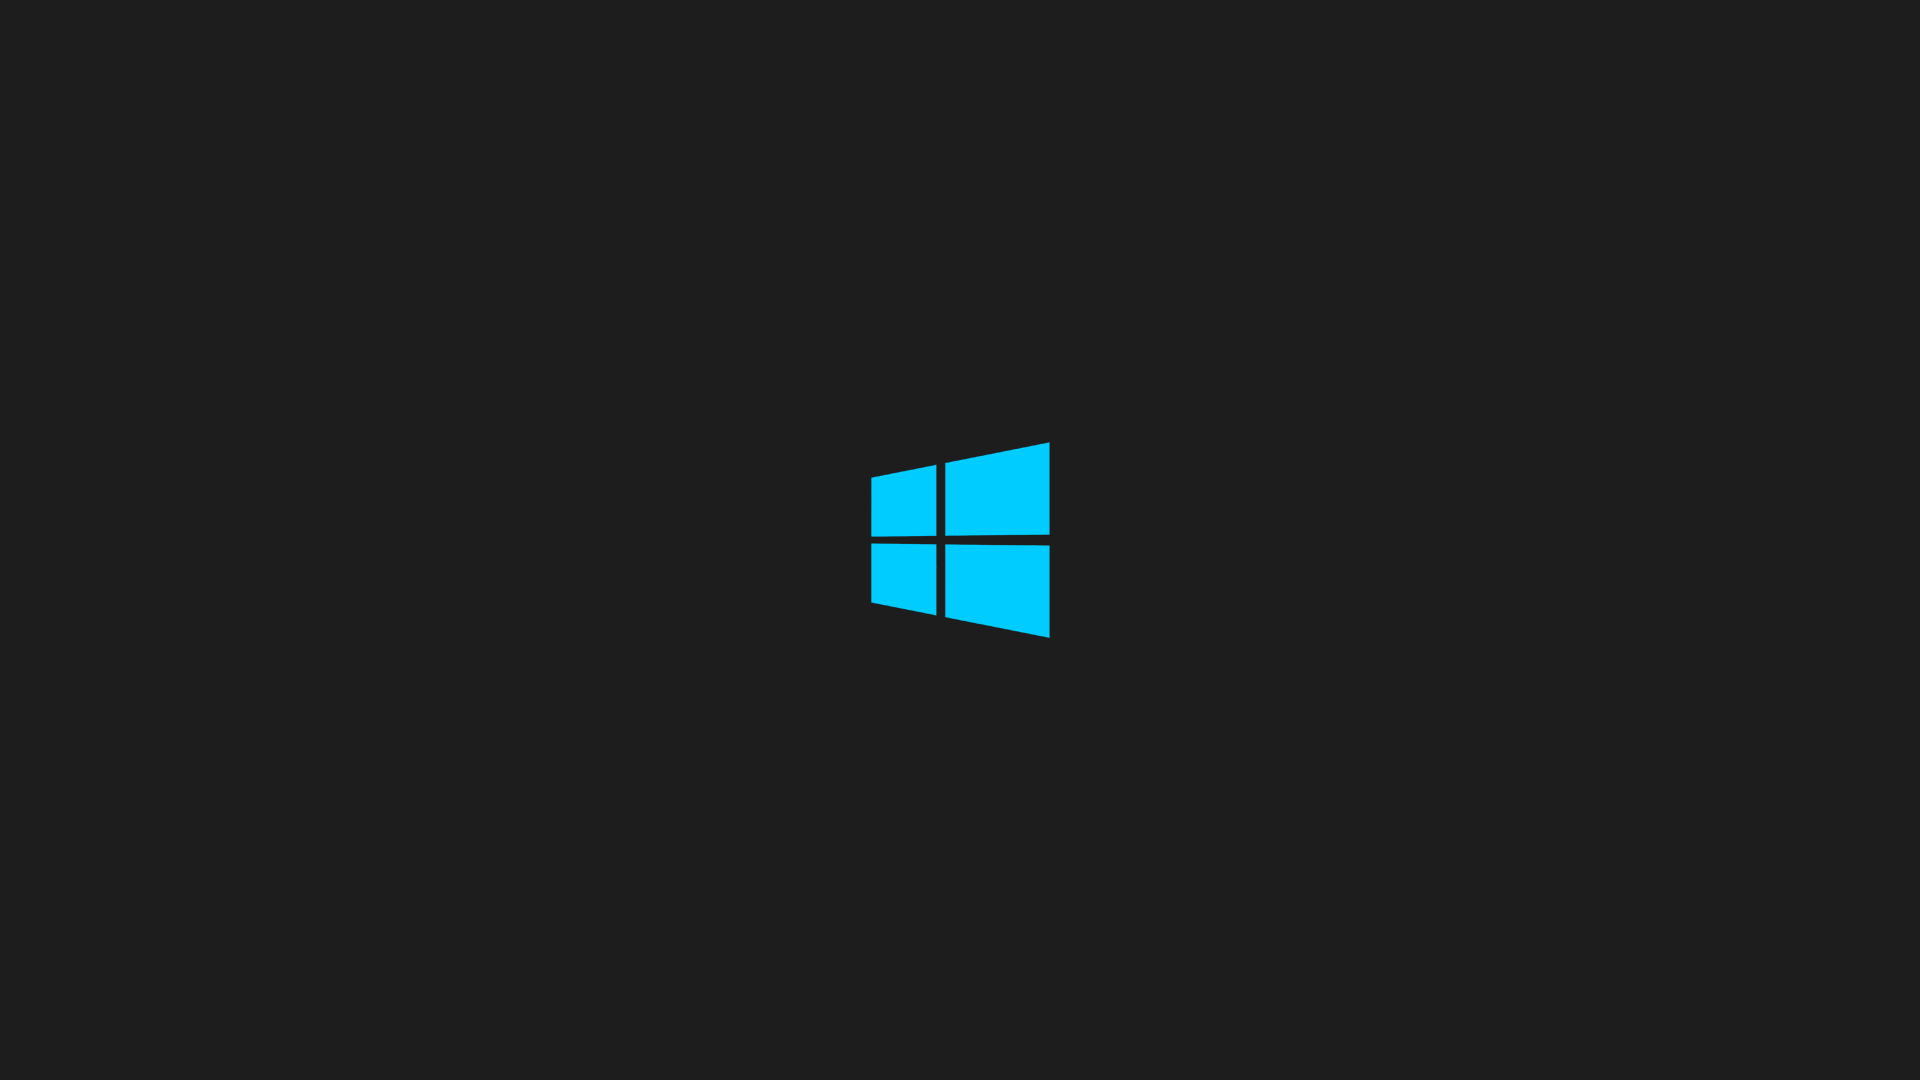 Download wallpapers for windows 8 1 hd